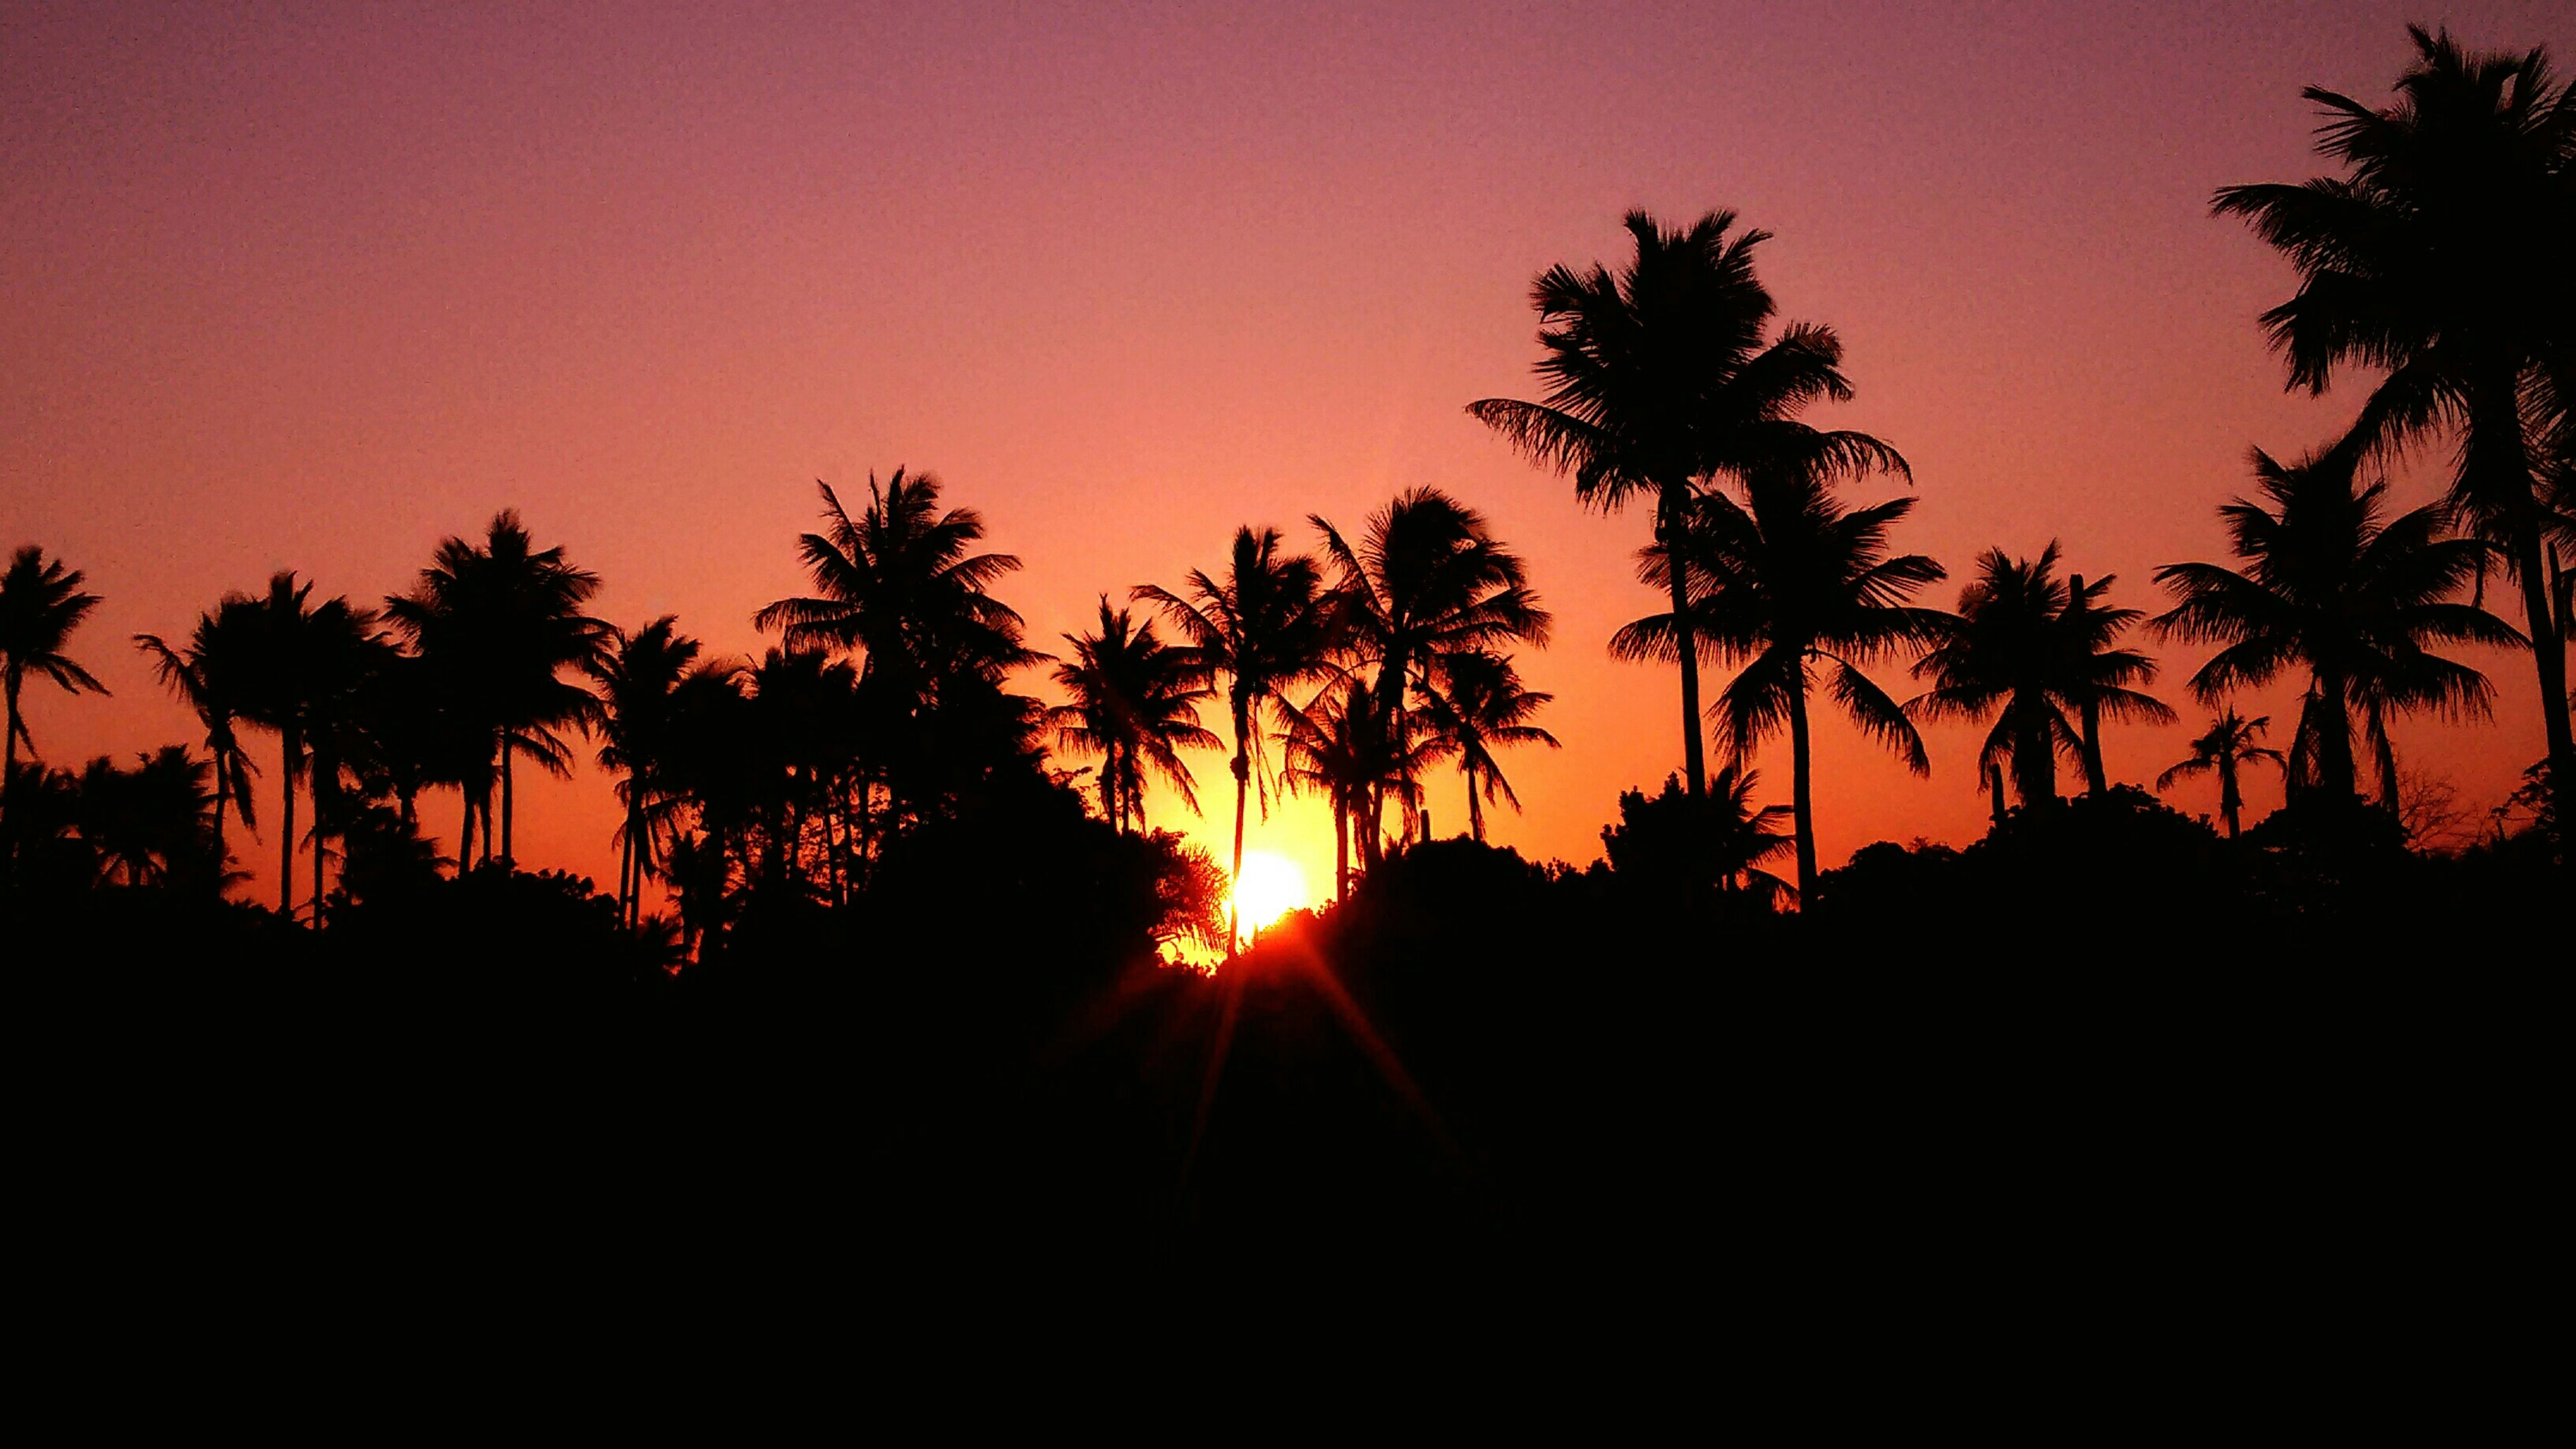 sunset, silhouette, palm tree, tree, sun, tranquility, tranquil scene, beauty in nature, orange color, scenics, clear sky, nature, idyllic, sunlight, copy space, sky, growth, outline, dark, back lit